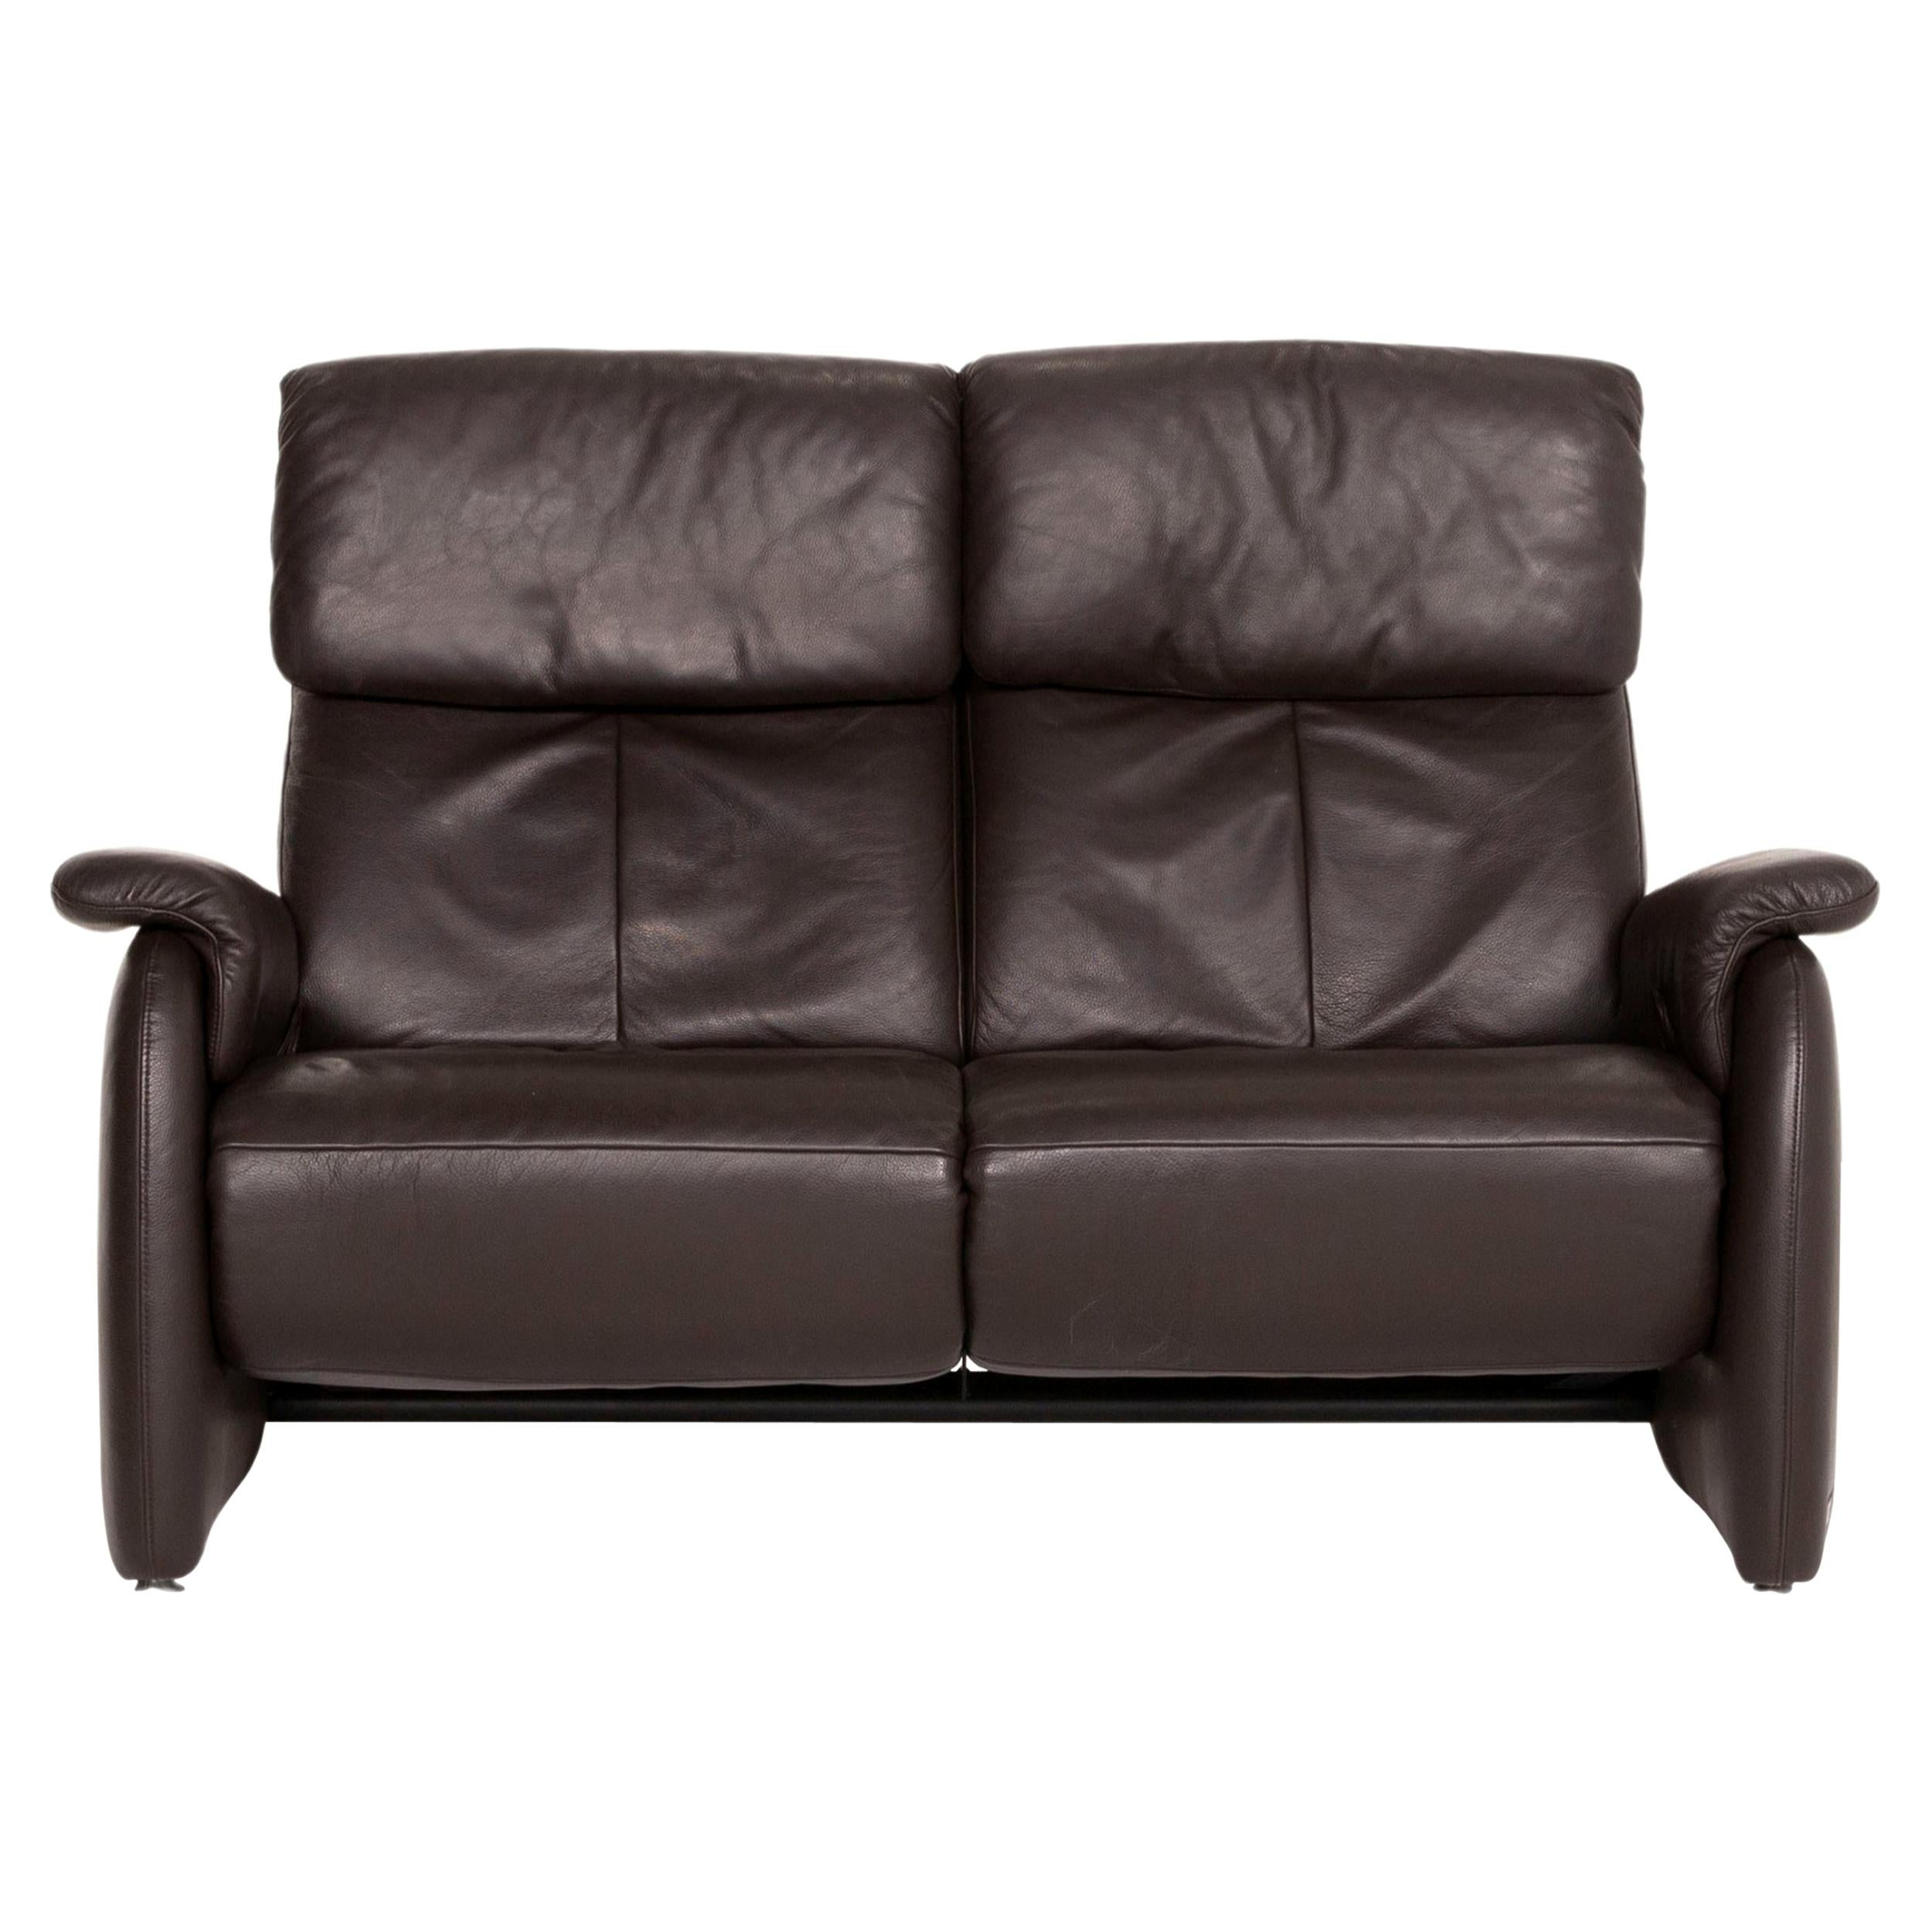 Willi Schillig Leather Sofa Brown Dark Brown Two-Seater Function Relax Function